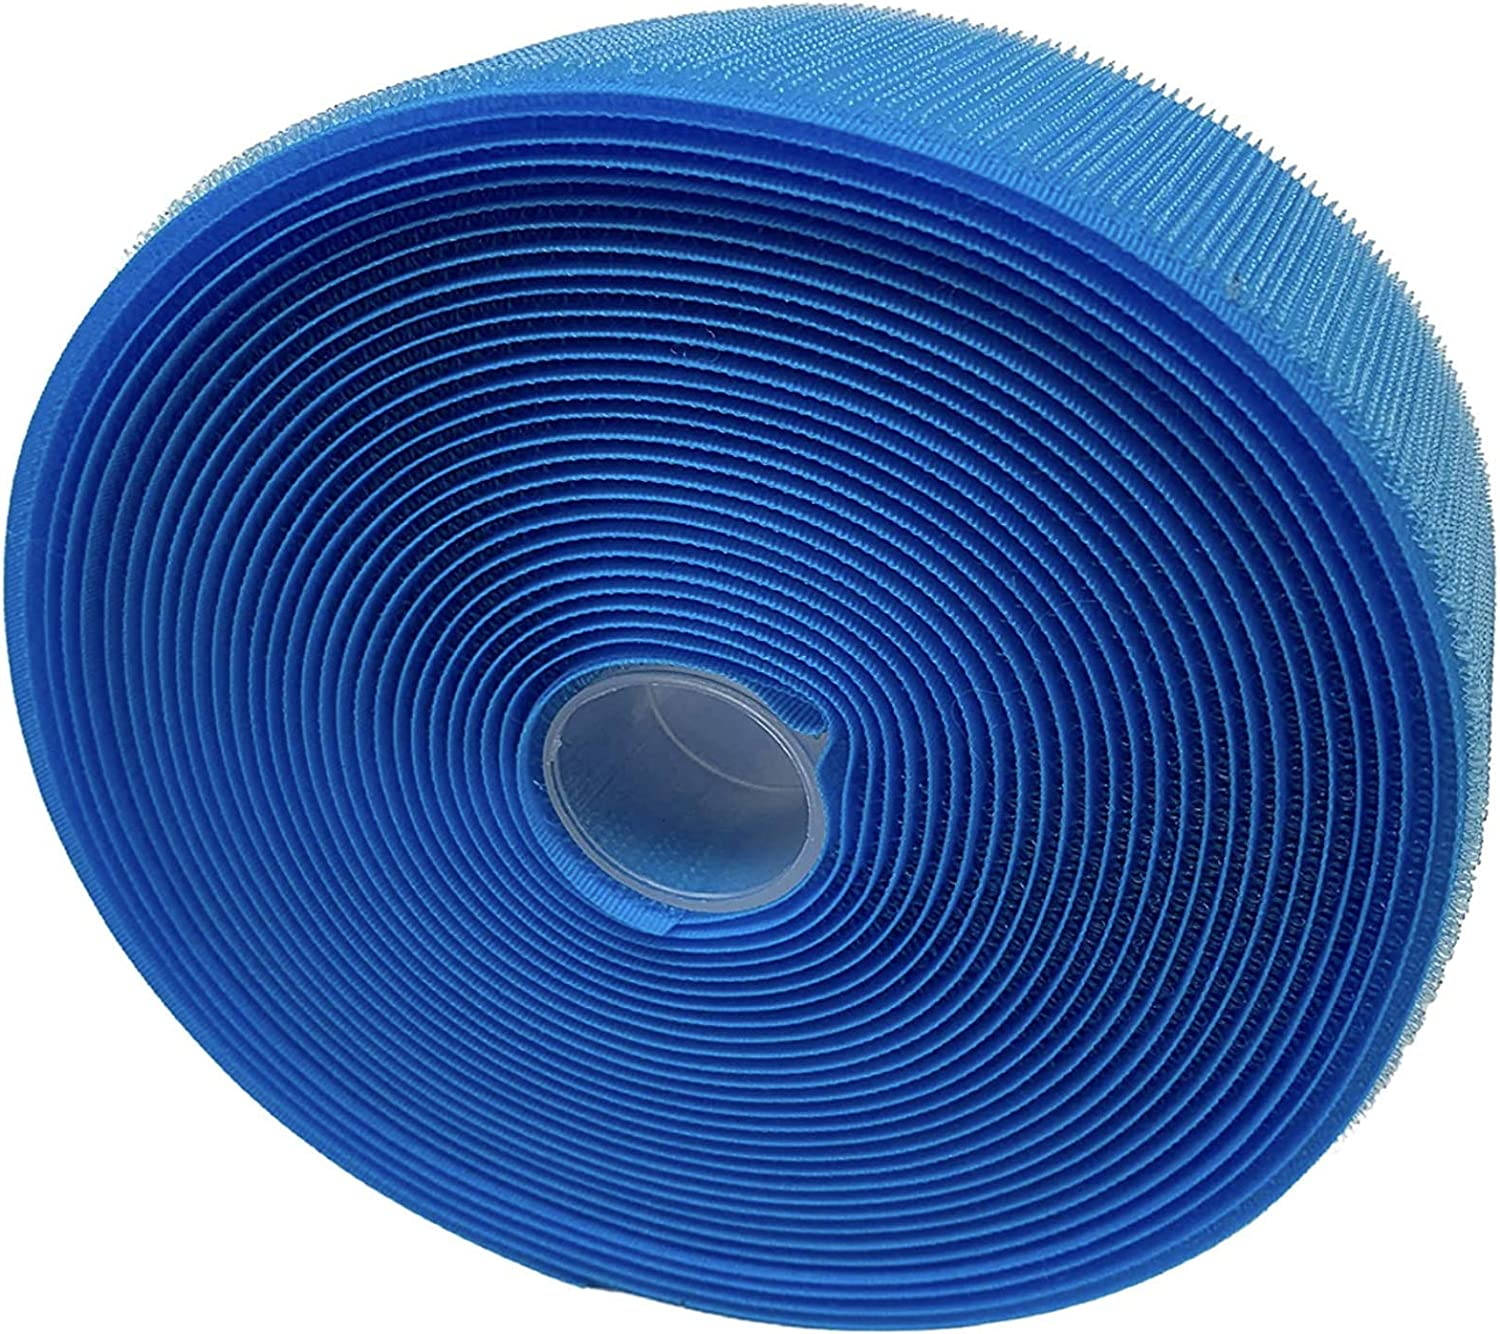 Classroom Management Teacher Blue School Early Childhood Education 25 FEET in Length Carpet Markers Strips Social Distancing Sit Carpet Spots 2 Inch Wide